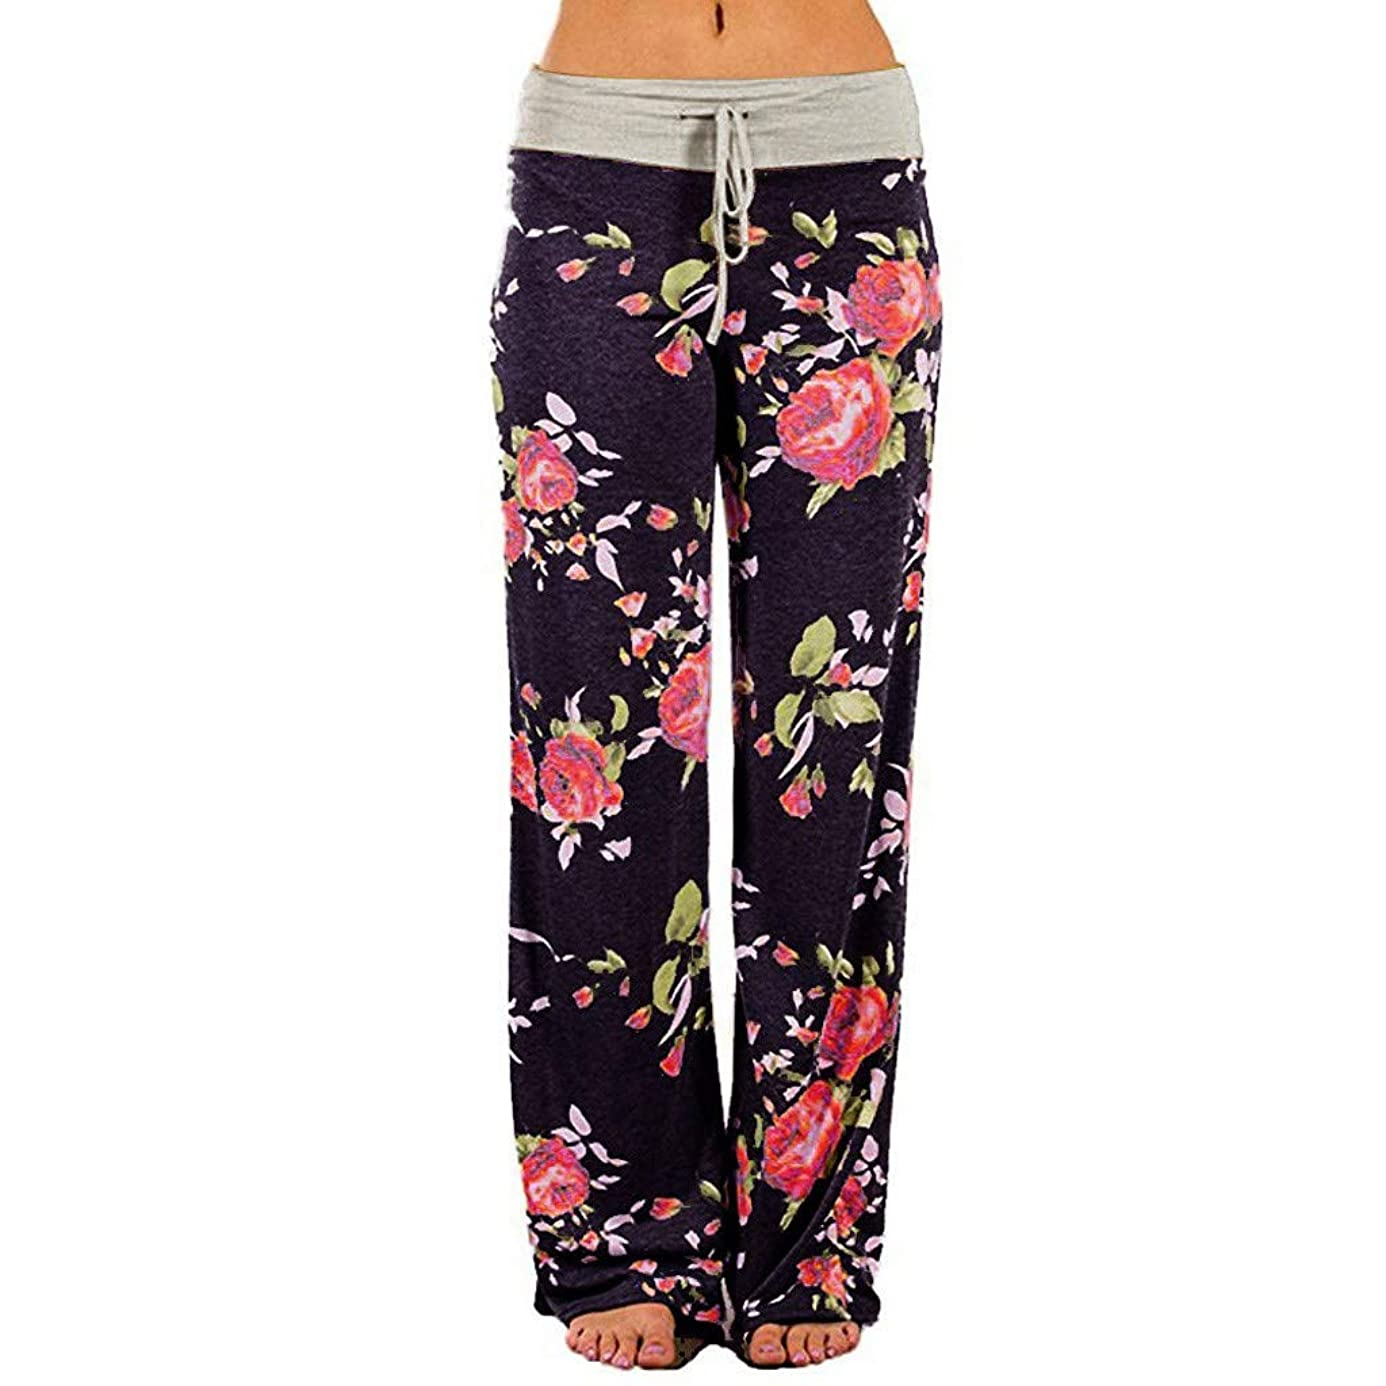 hositor Yoga Pants for Women, Ladies Comfy Stretch Floral Print Drawstring Palazzo Wide Leg Lounge Pants